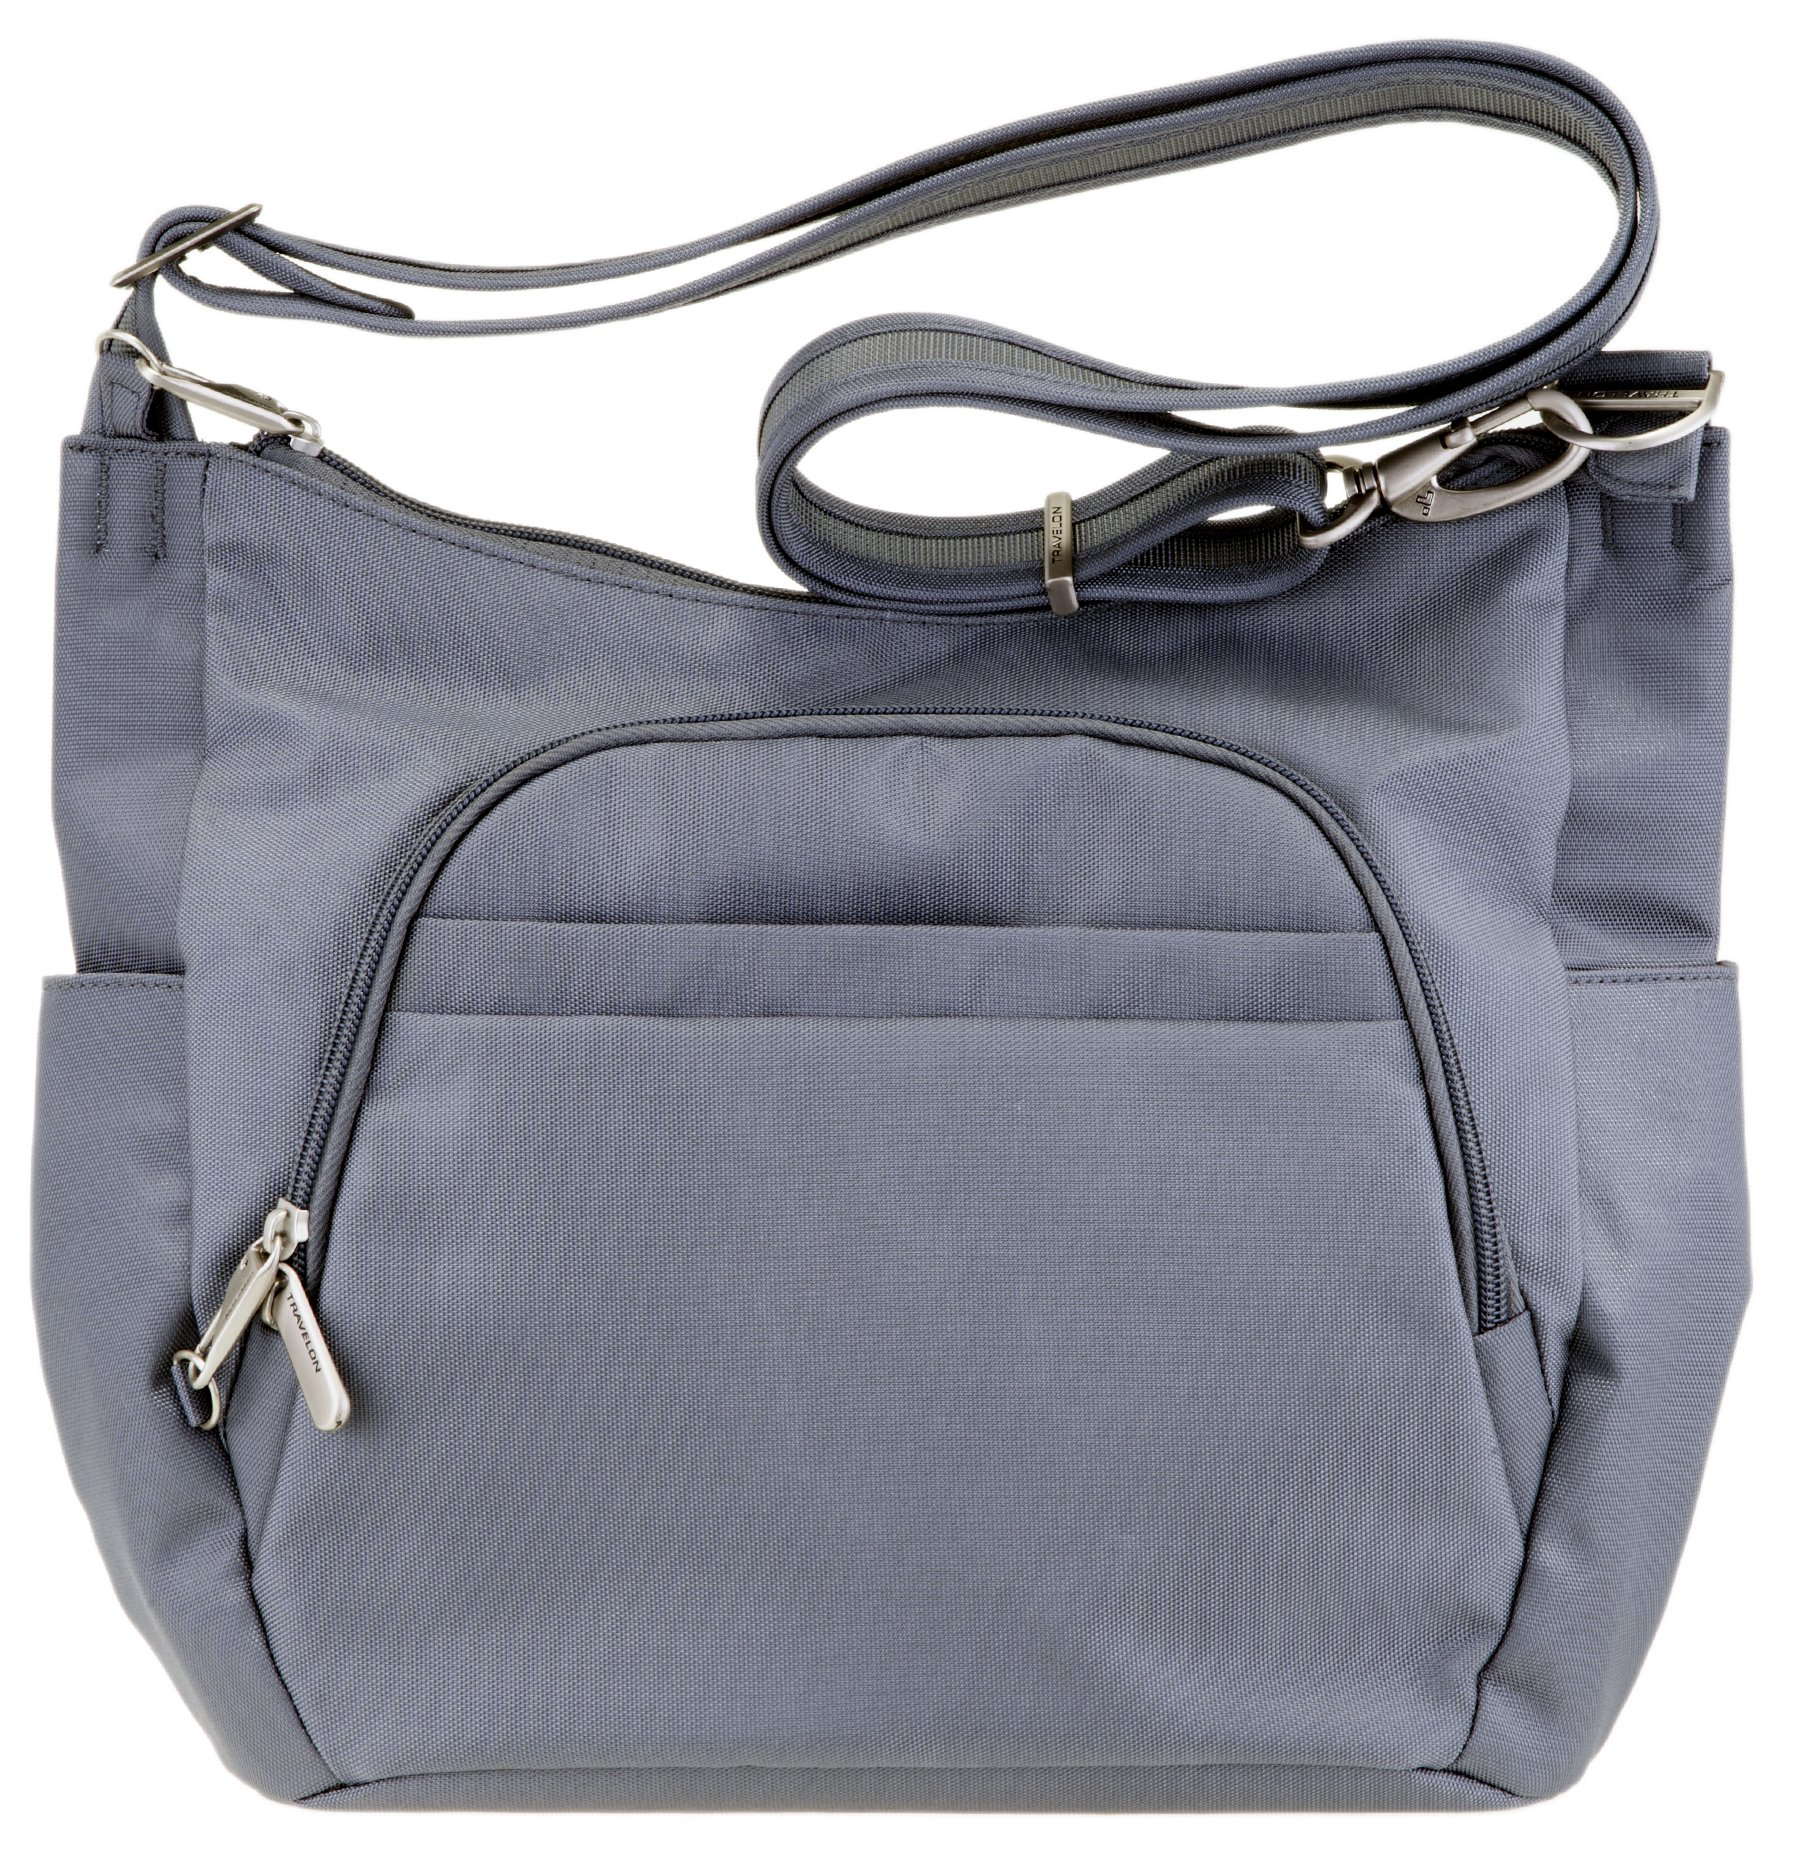 Travelon Anti-Theft Cross-Body Bucket Bag (Pewter)